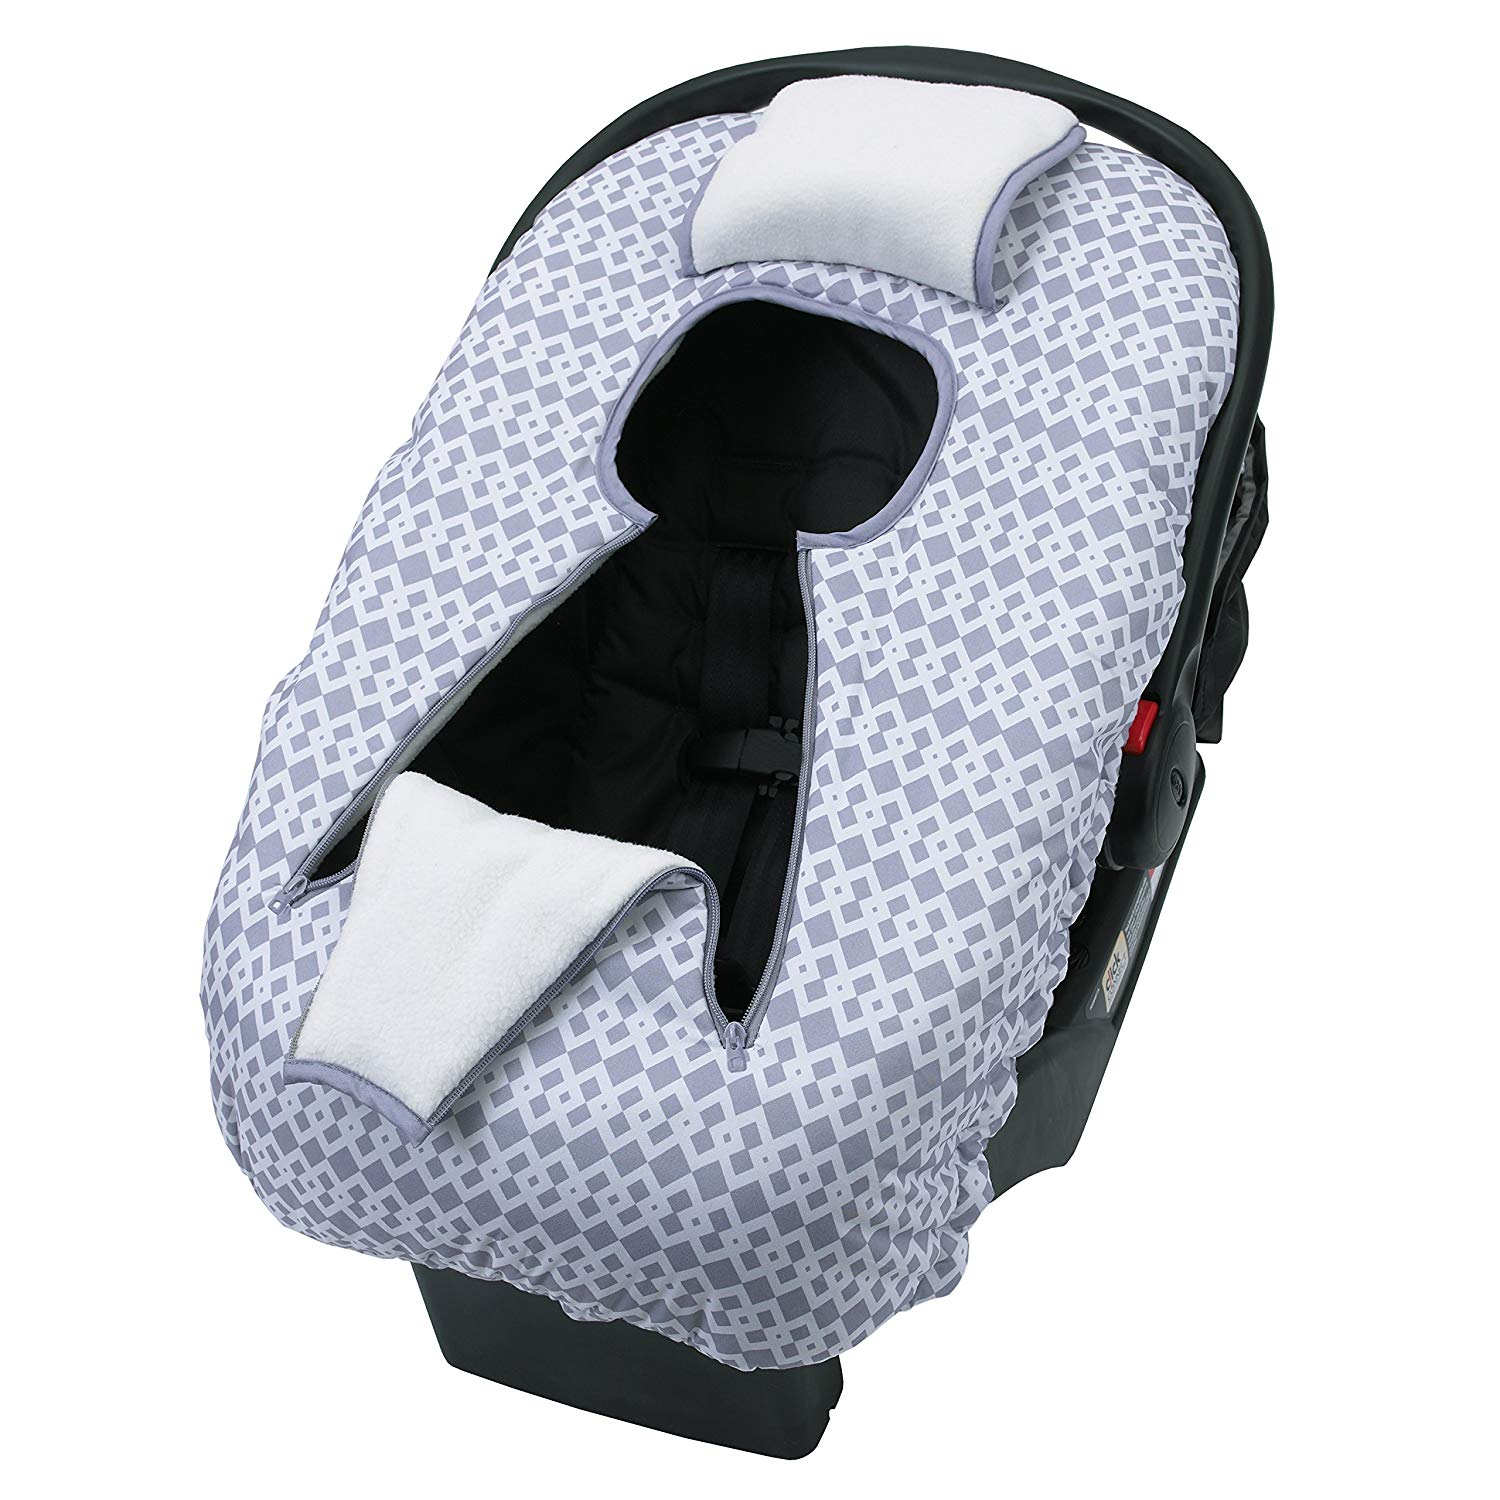 76fe29e0513 Details about NoJo On The Go Baby Car Seat Cover-Up